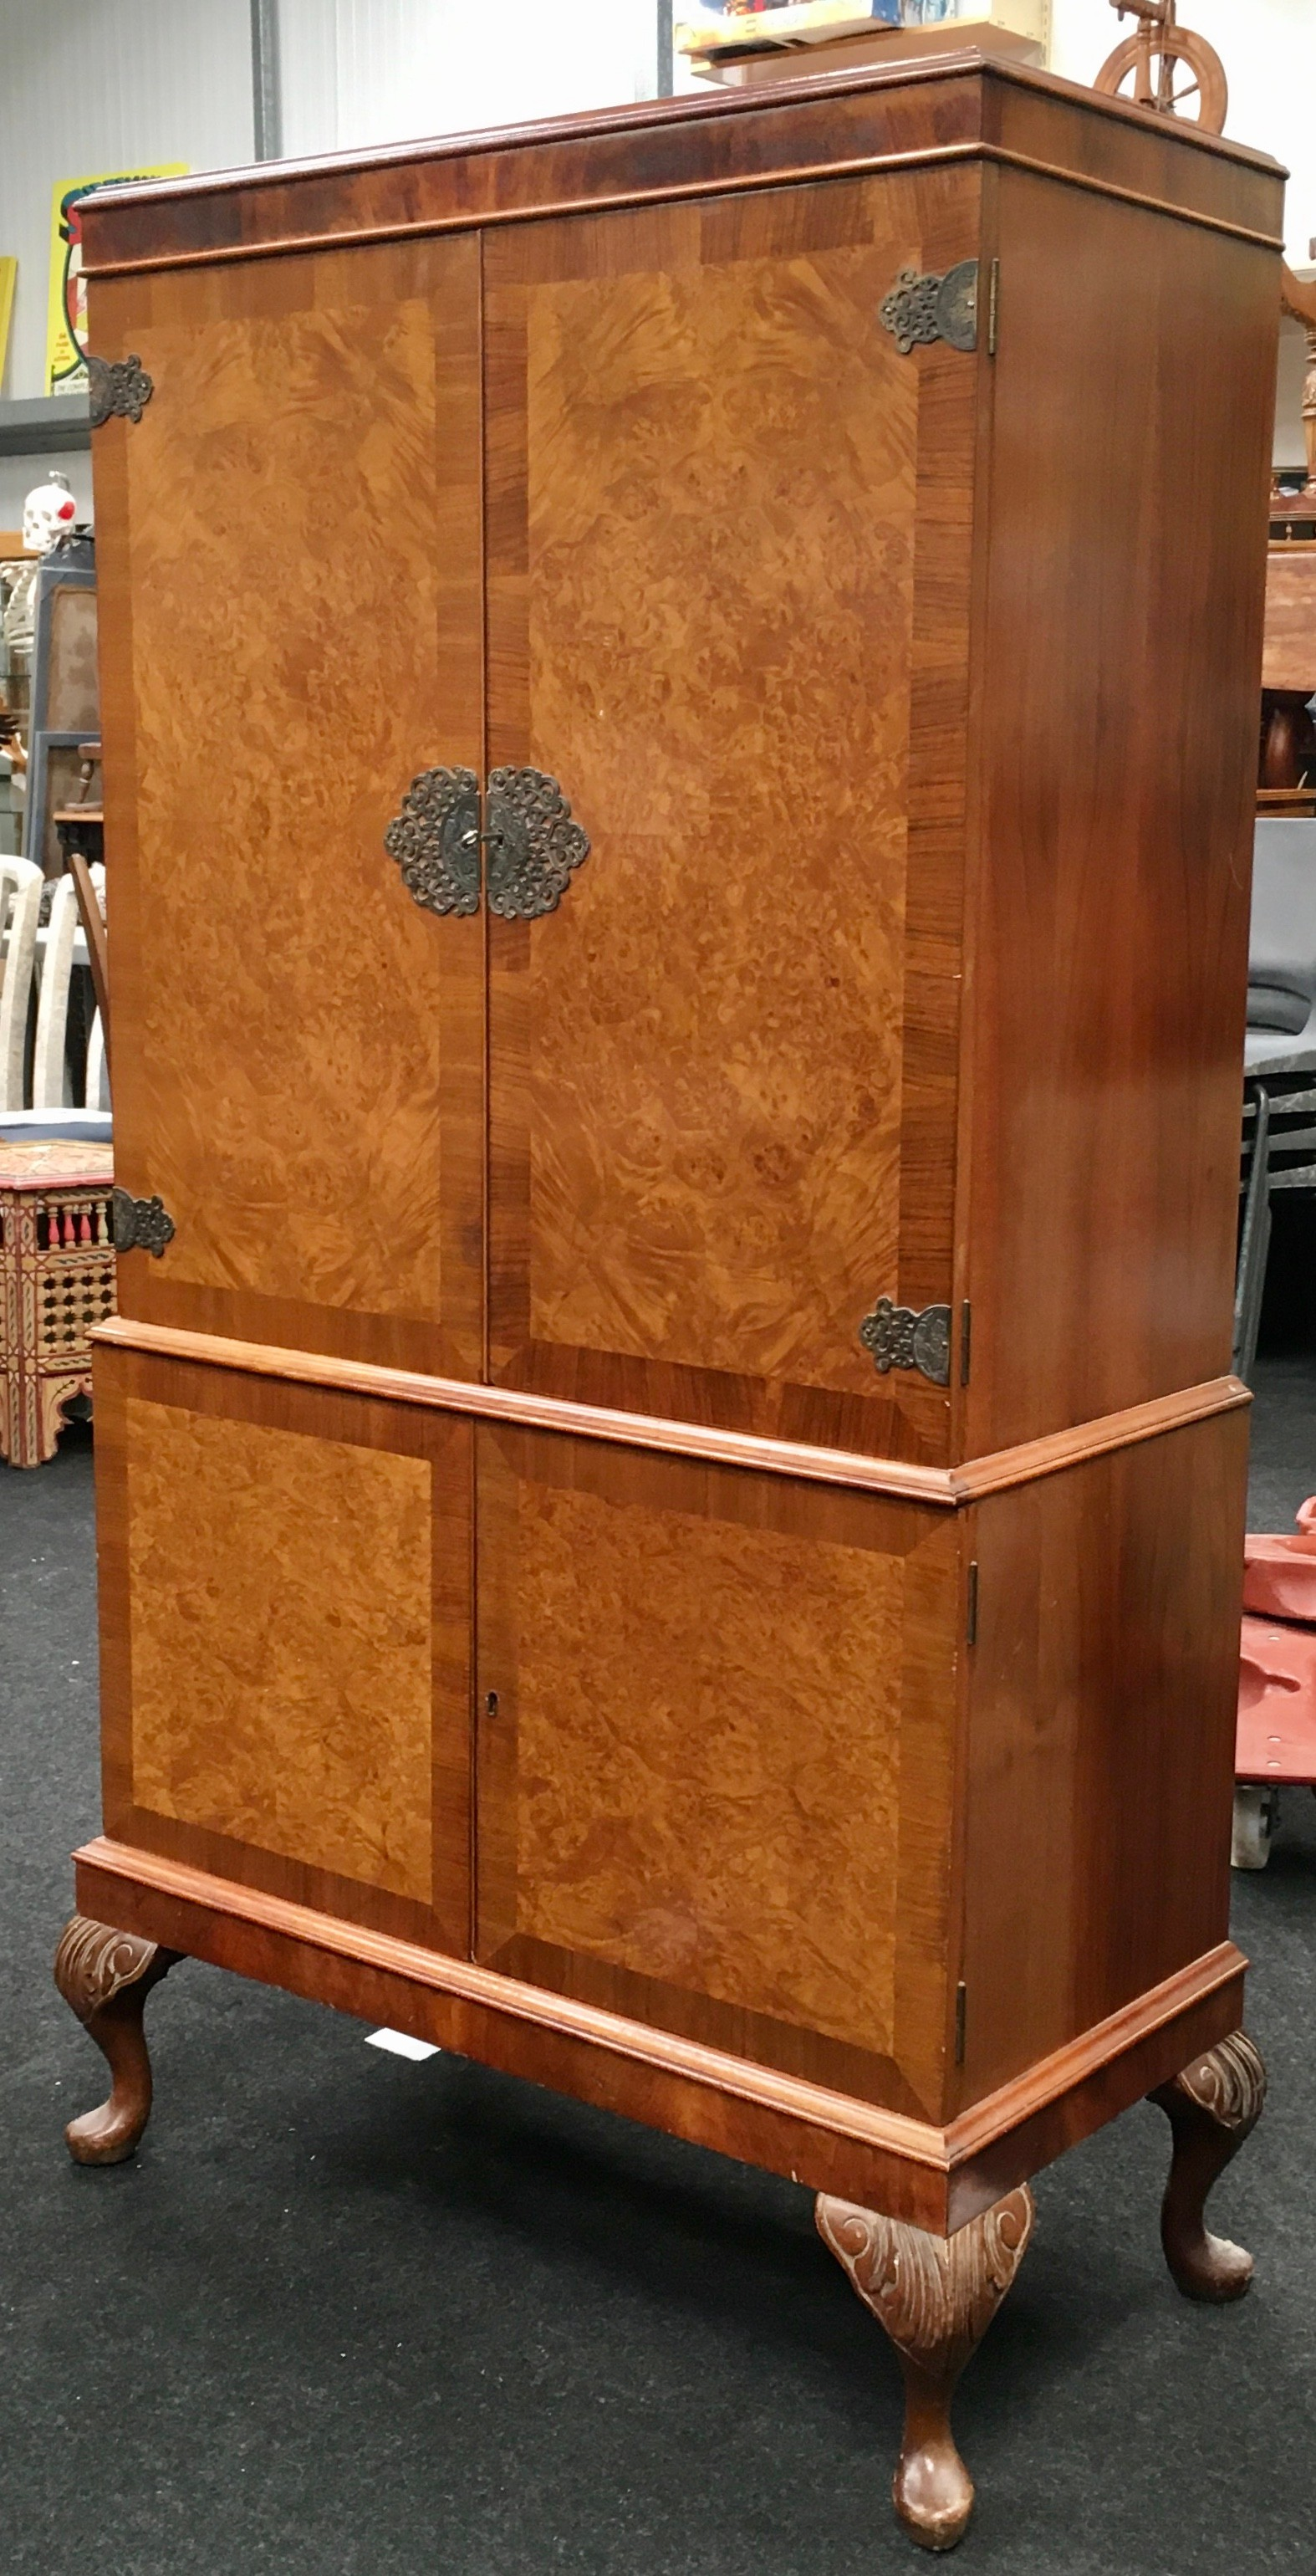 Mahogany alcohol/bar display unit on cabriole legs fitted with two sections includes key together - Image 2 of 4